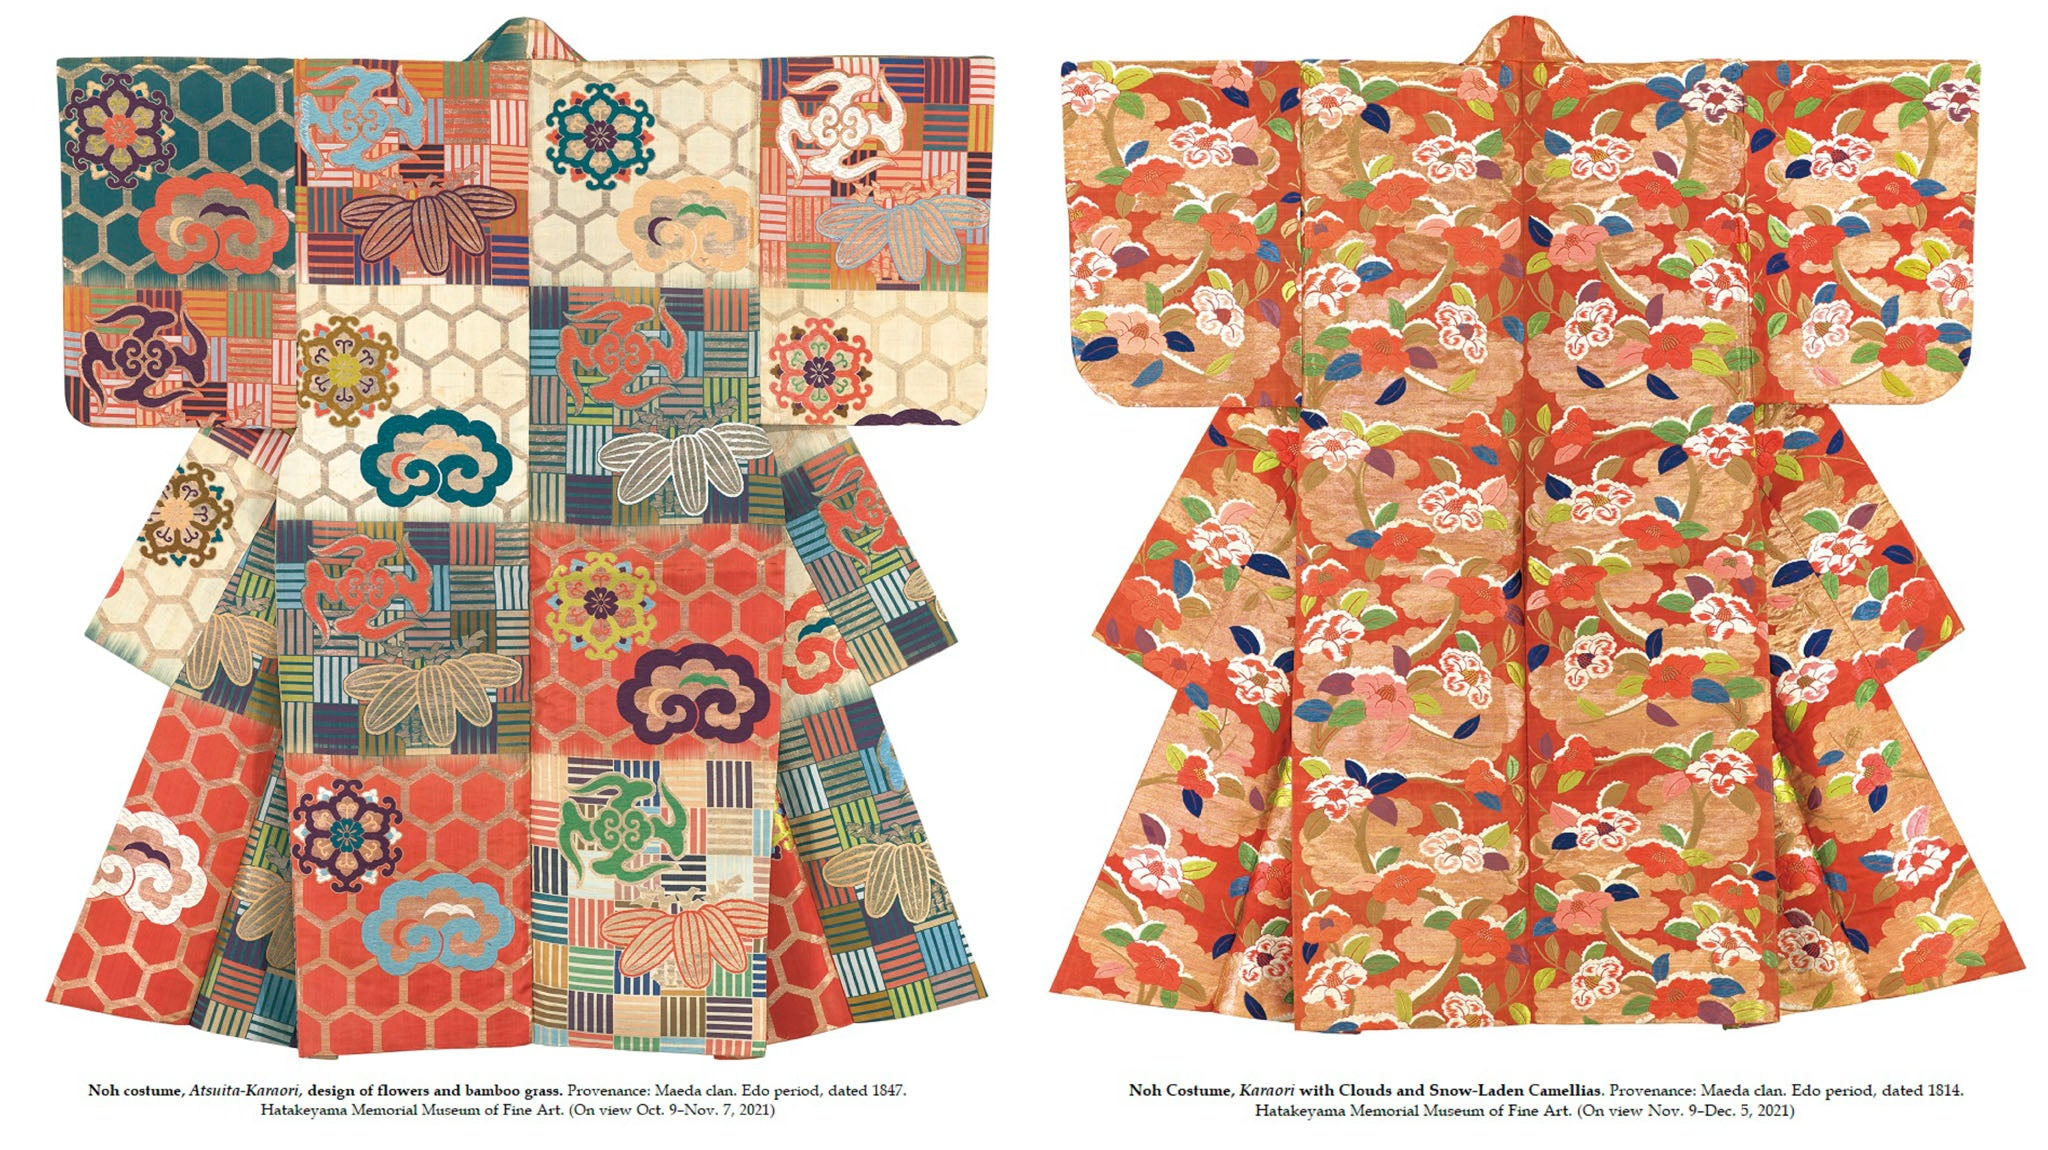 Kimono from the Hatakeyama Collection at Kyoto National Museum